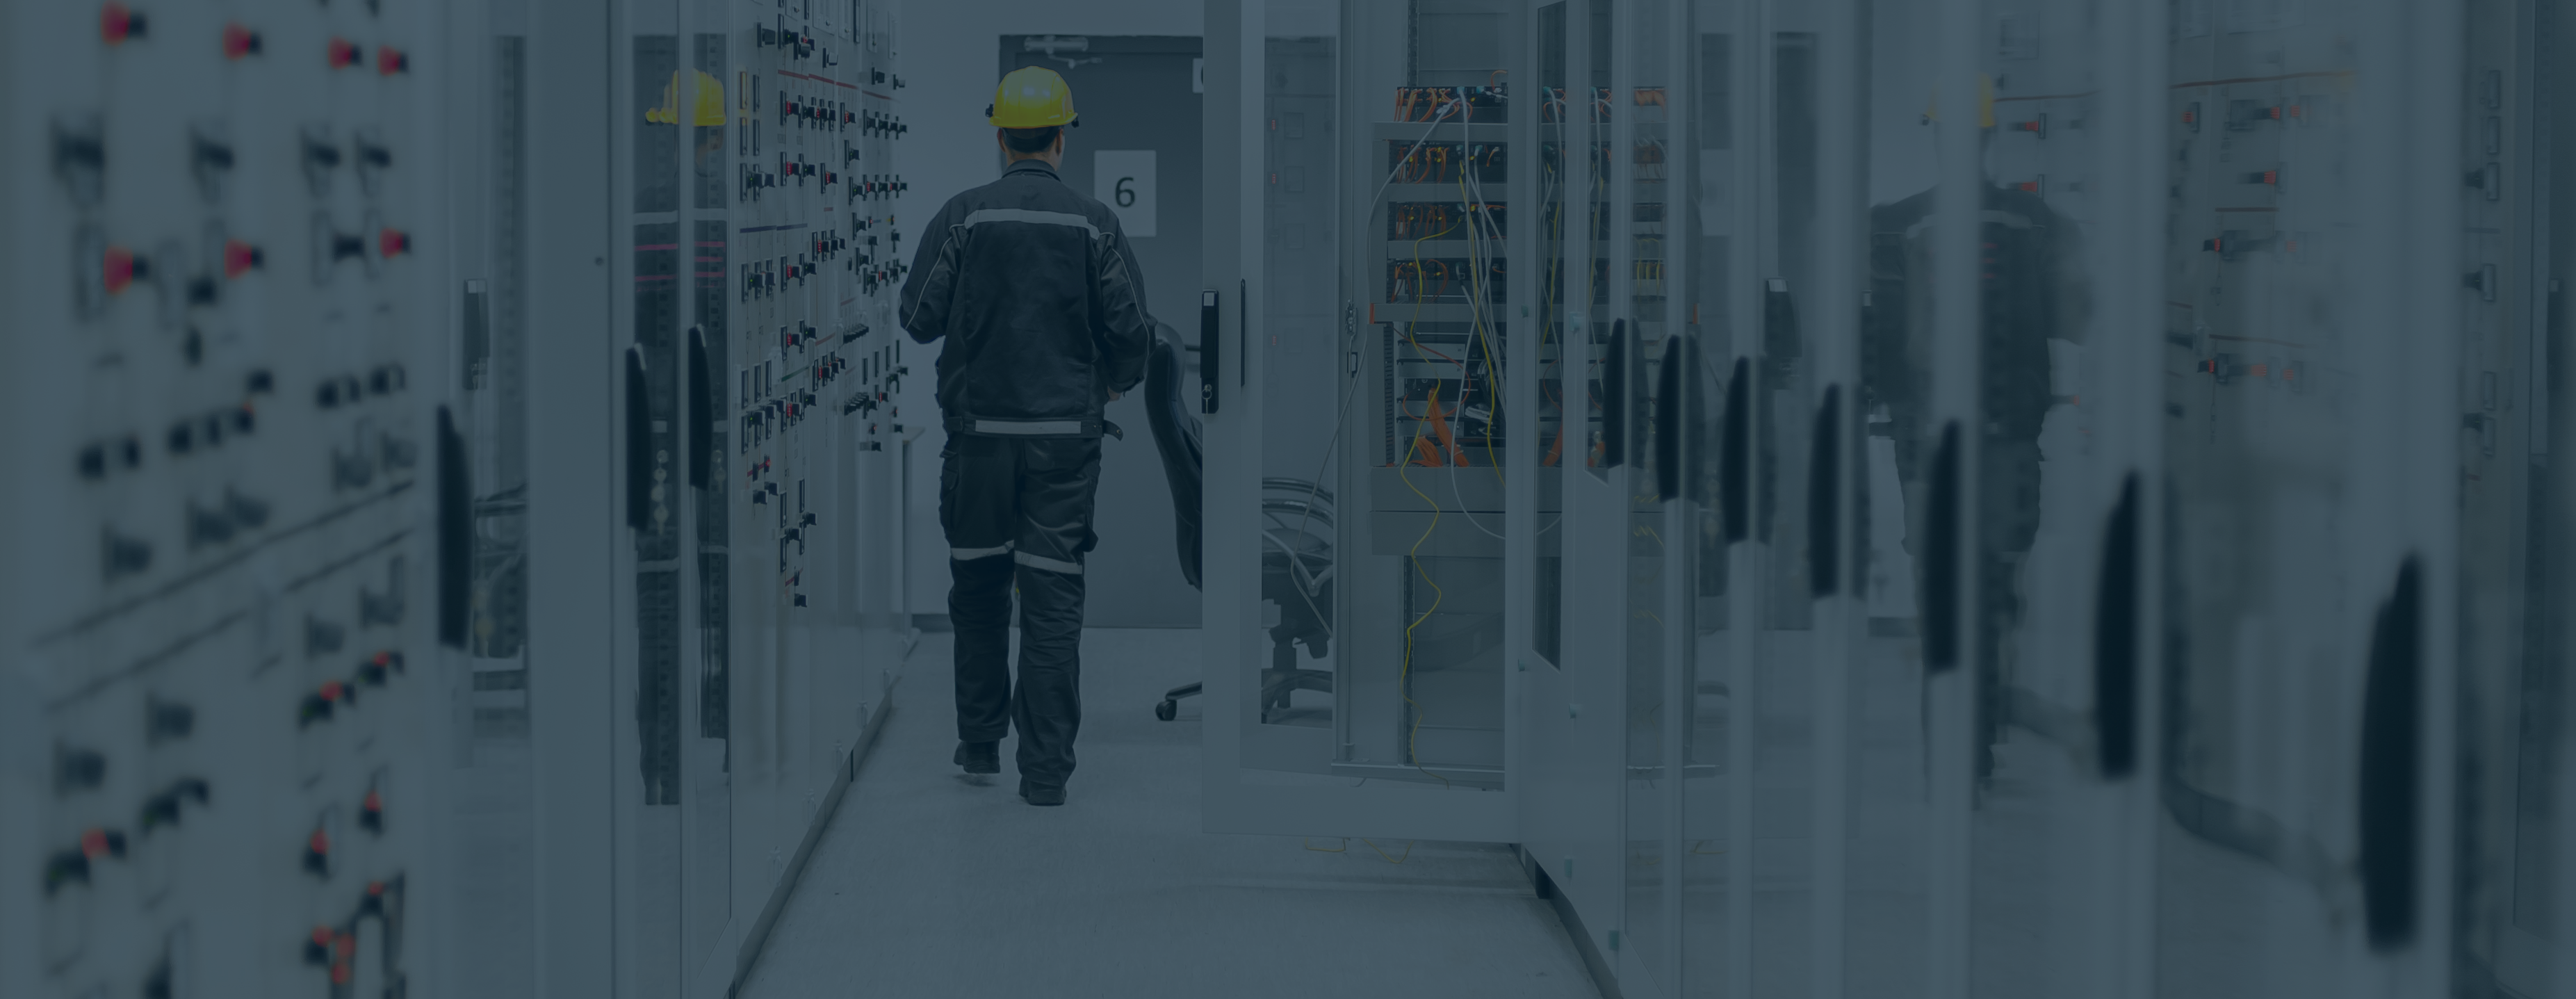 Medium voltage switchgear equipment with man in protective gear walking in background